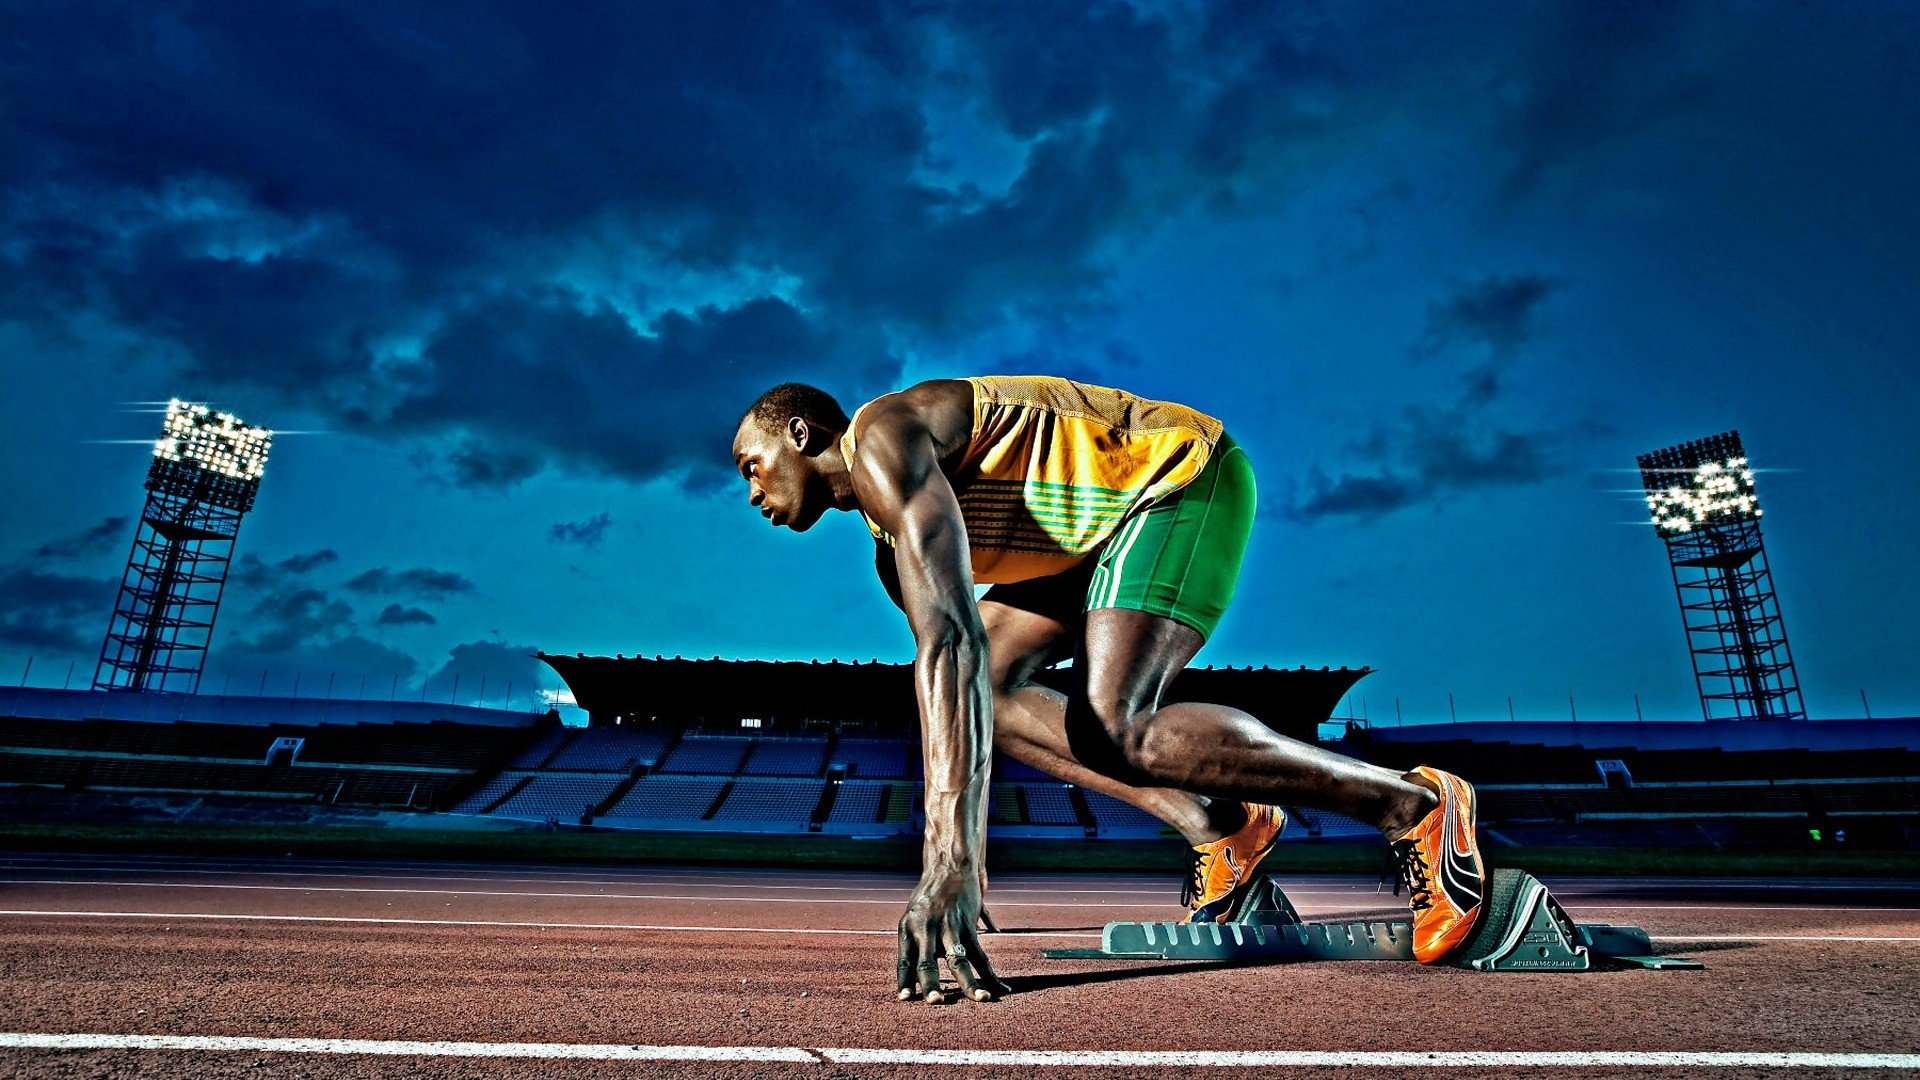 Awesome Usain Bolt free wallpaper ID:322655 for hd 1920x1080 PC